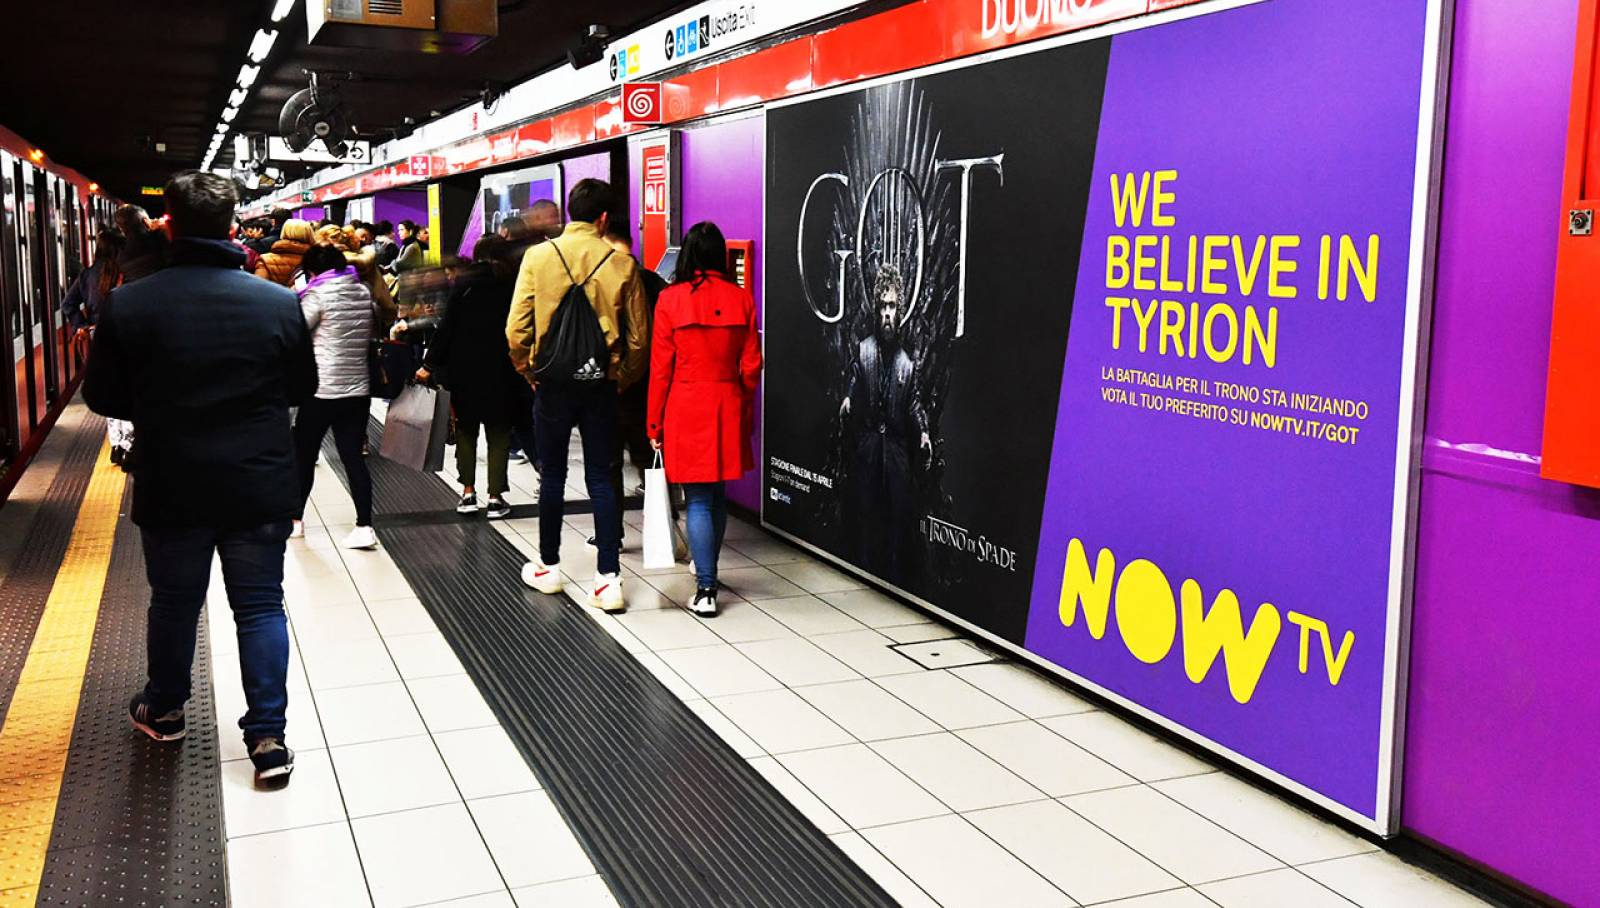 IGPDecaux outdoor advertising a Milano Station Domination per Now TV il Trono di Spade